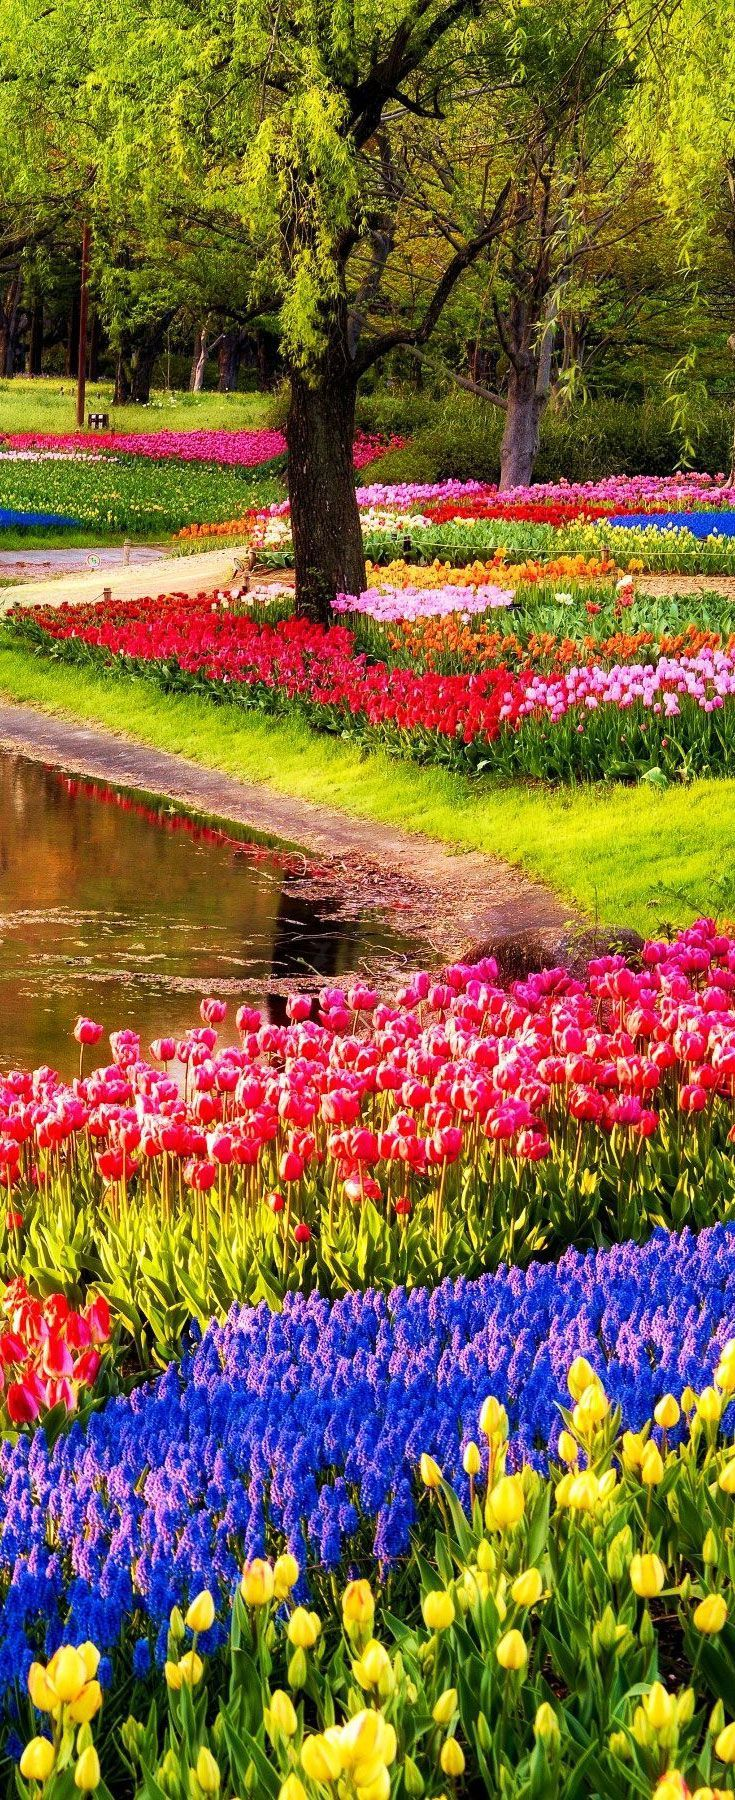 Cool The Keukenhof Garden also known as the Garden of Europe is one of the world us biggest flower gardens